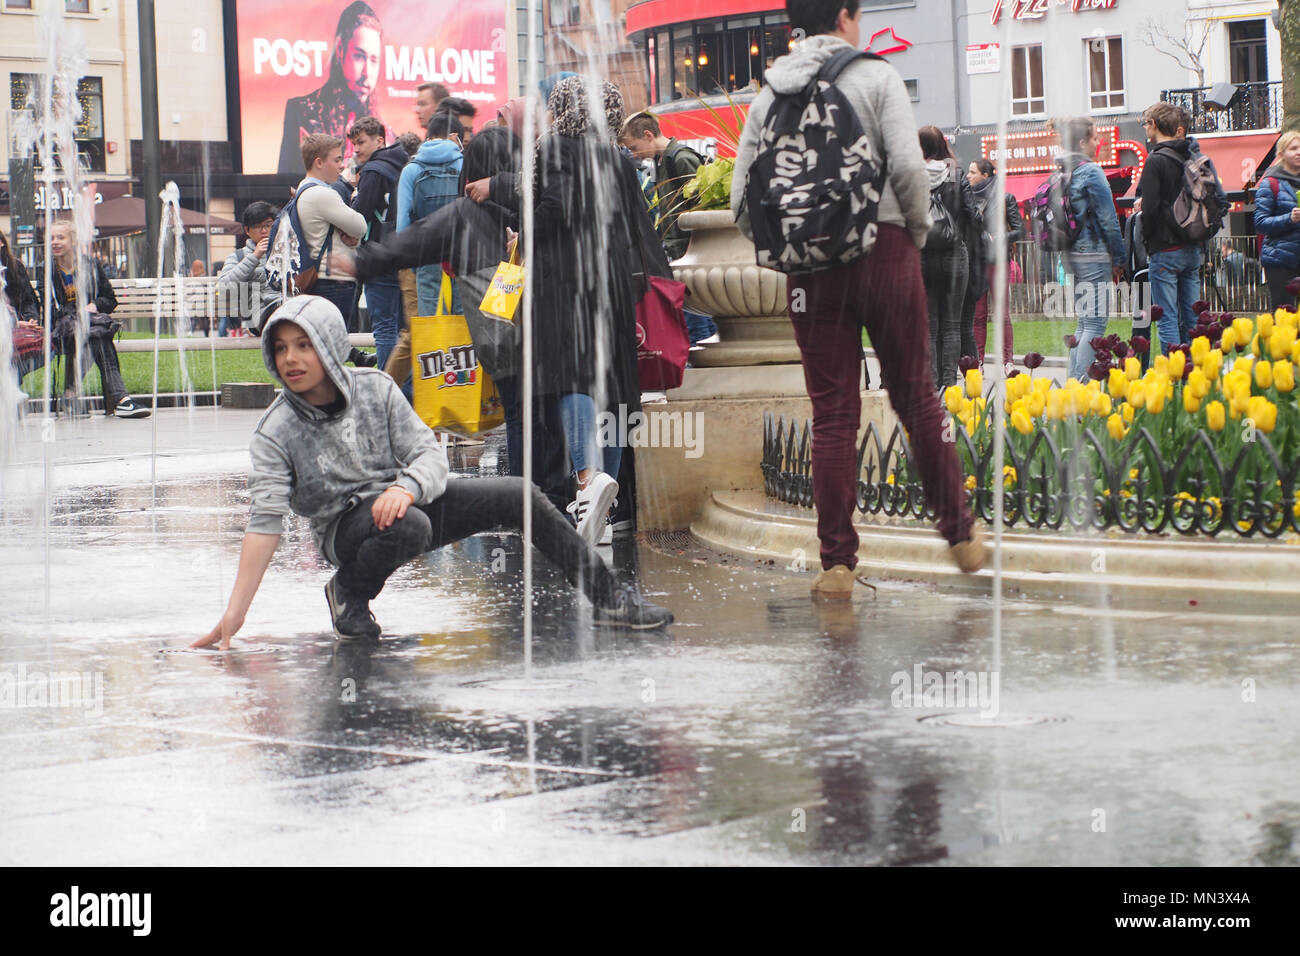 Young teenagers playing in the fountains in Leicester Square, London with other pedestrians around - Stock Image